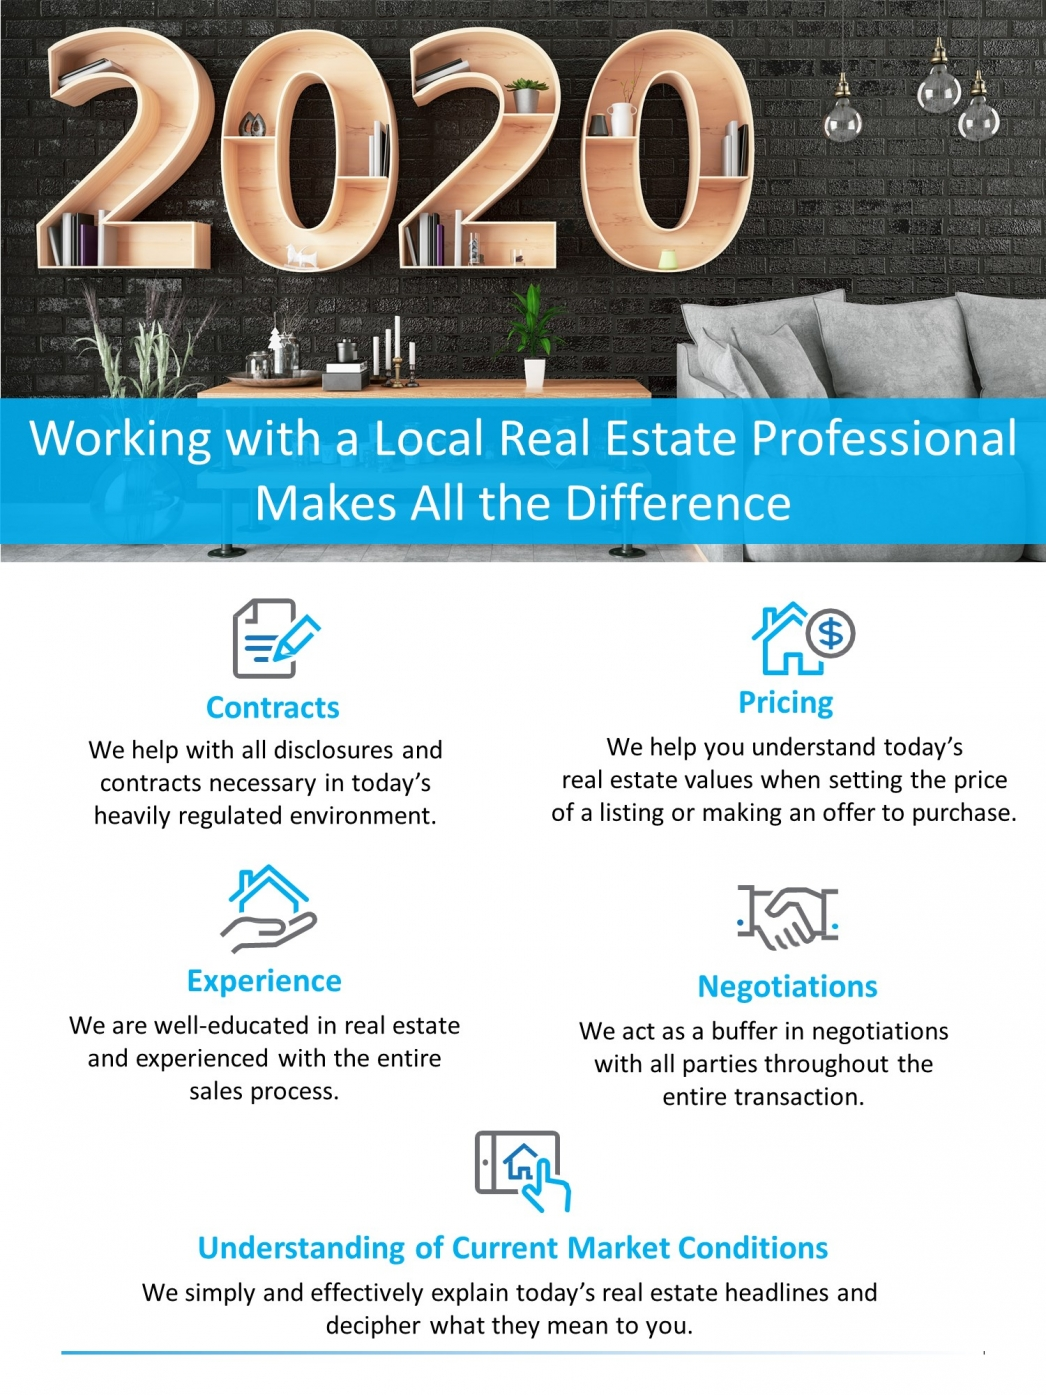 Working with a Local Real Estate Professional Makes All the Difference [INFOGRAPHIC] | MyKCM